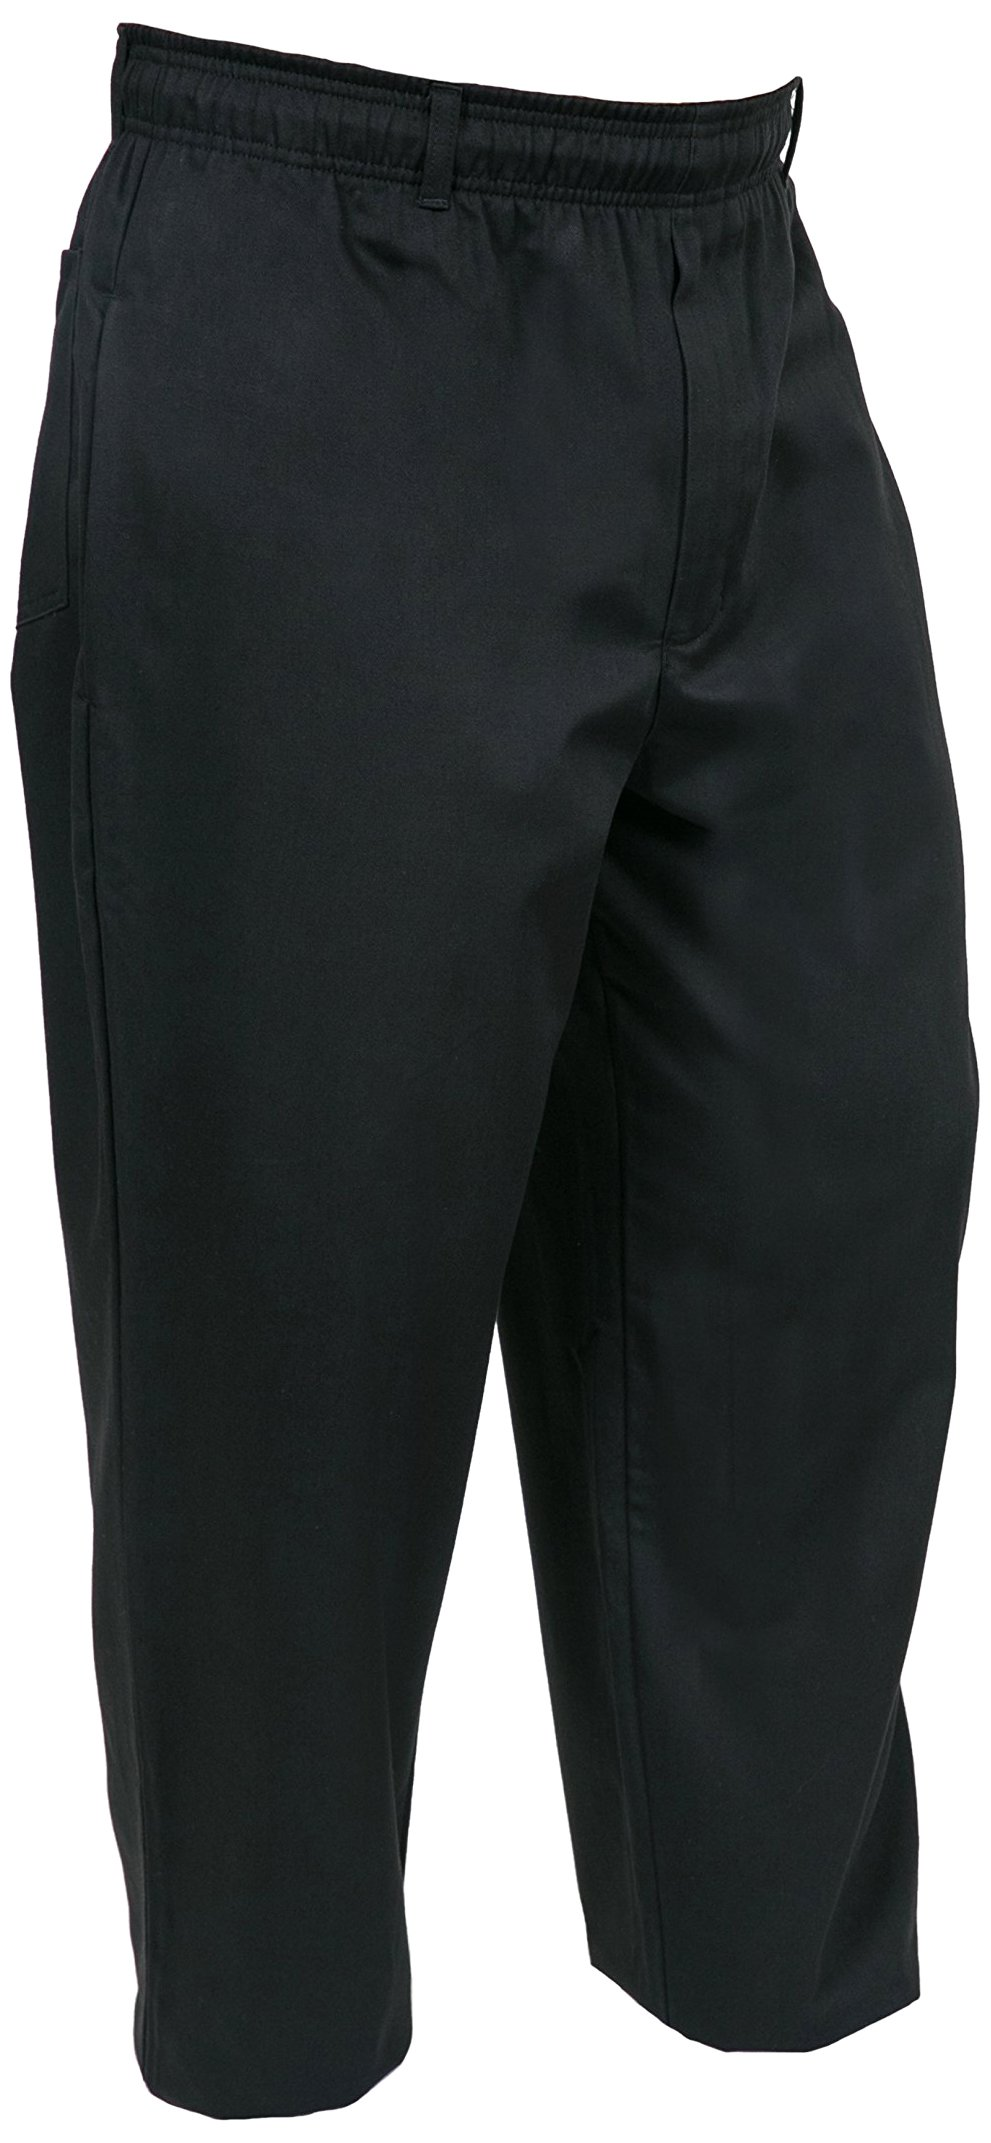 Mercer Culinary M61060BK5X Genesis Men's Chef Pants, 5X-Large, Black by Mercer Culinary